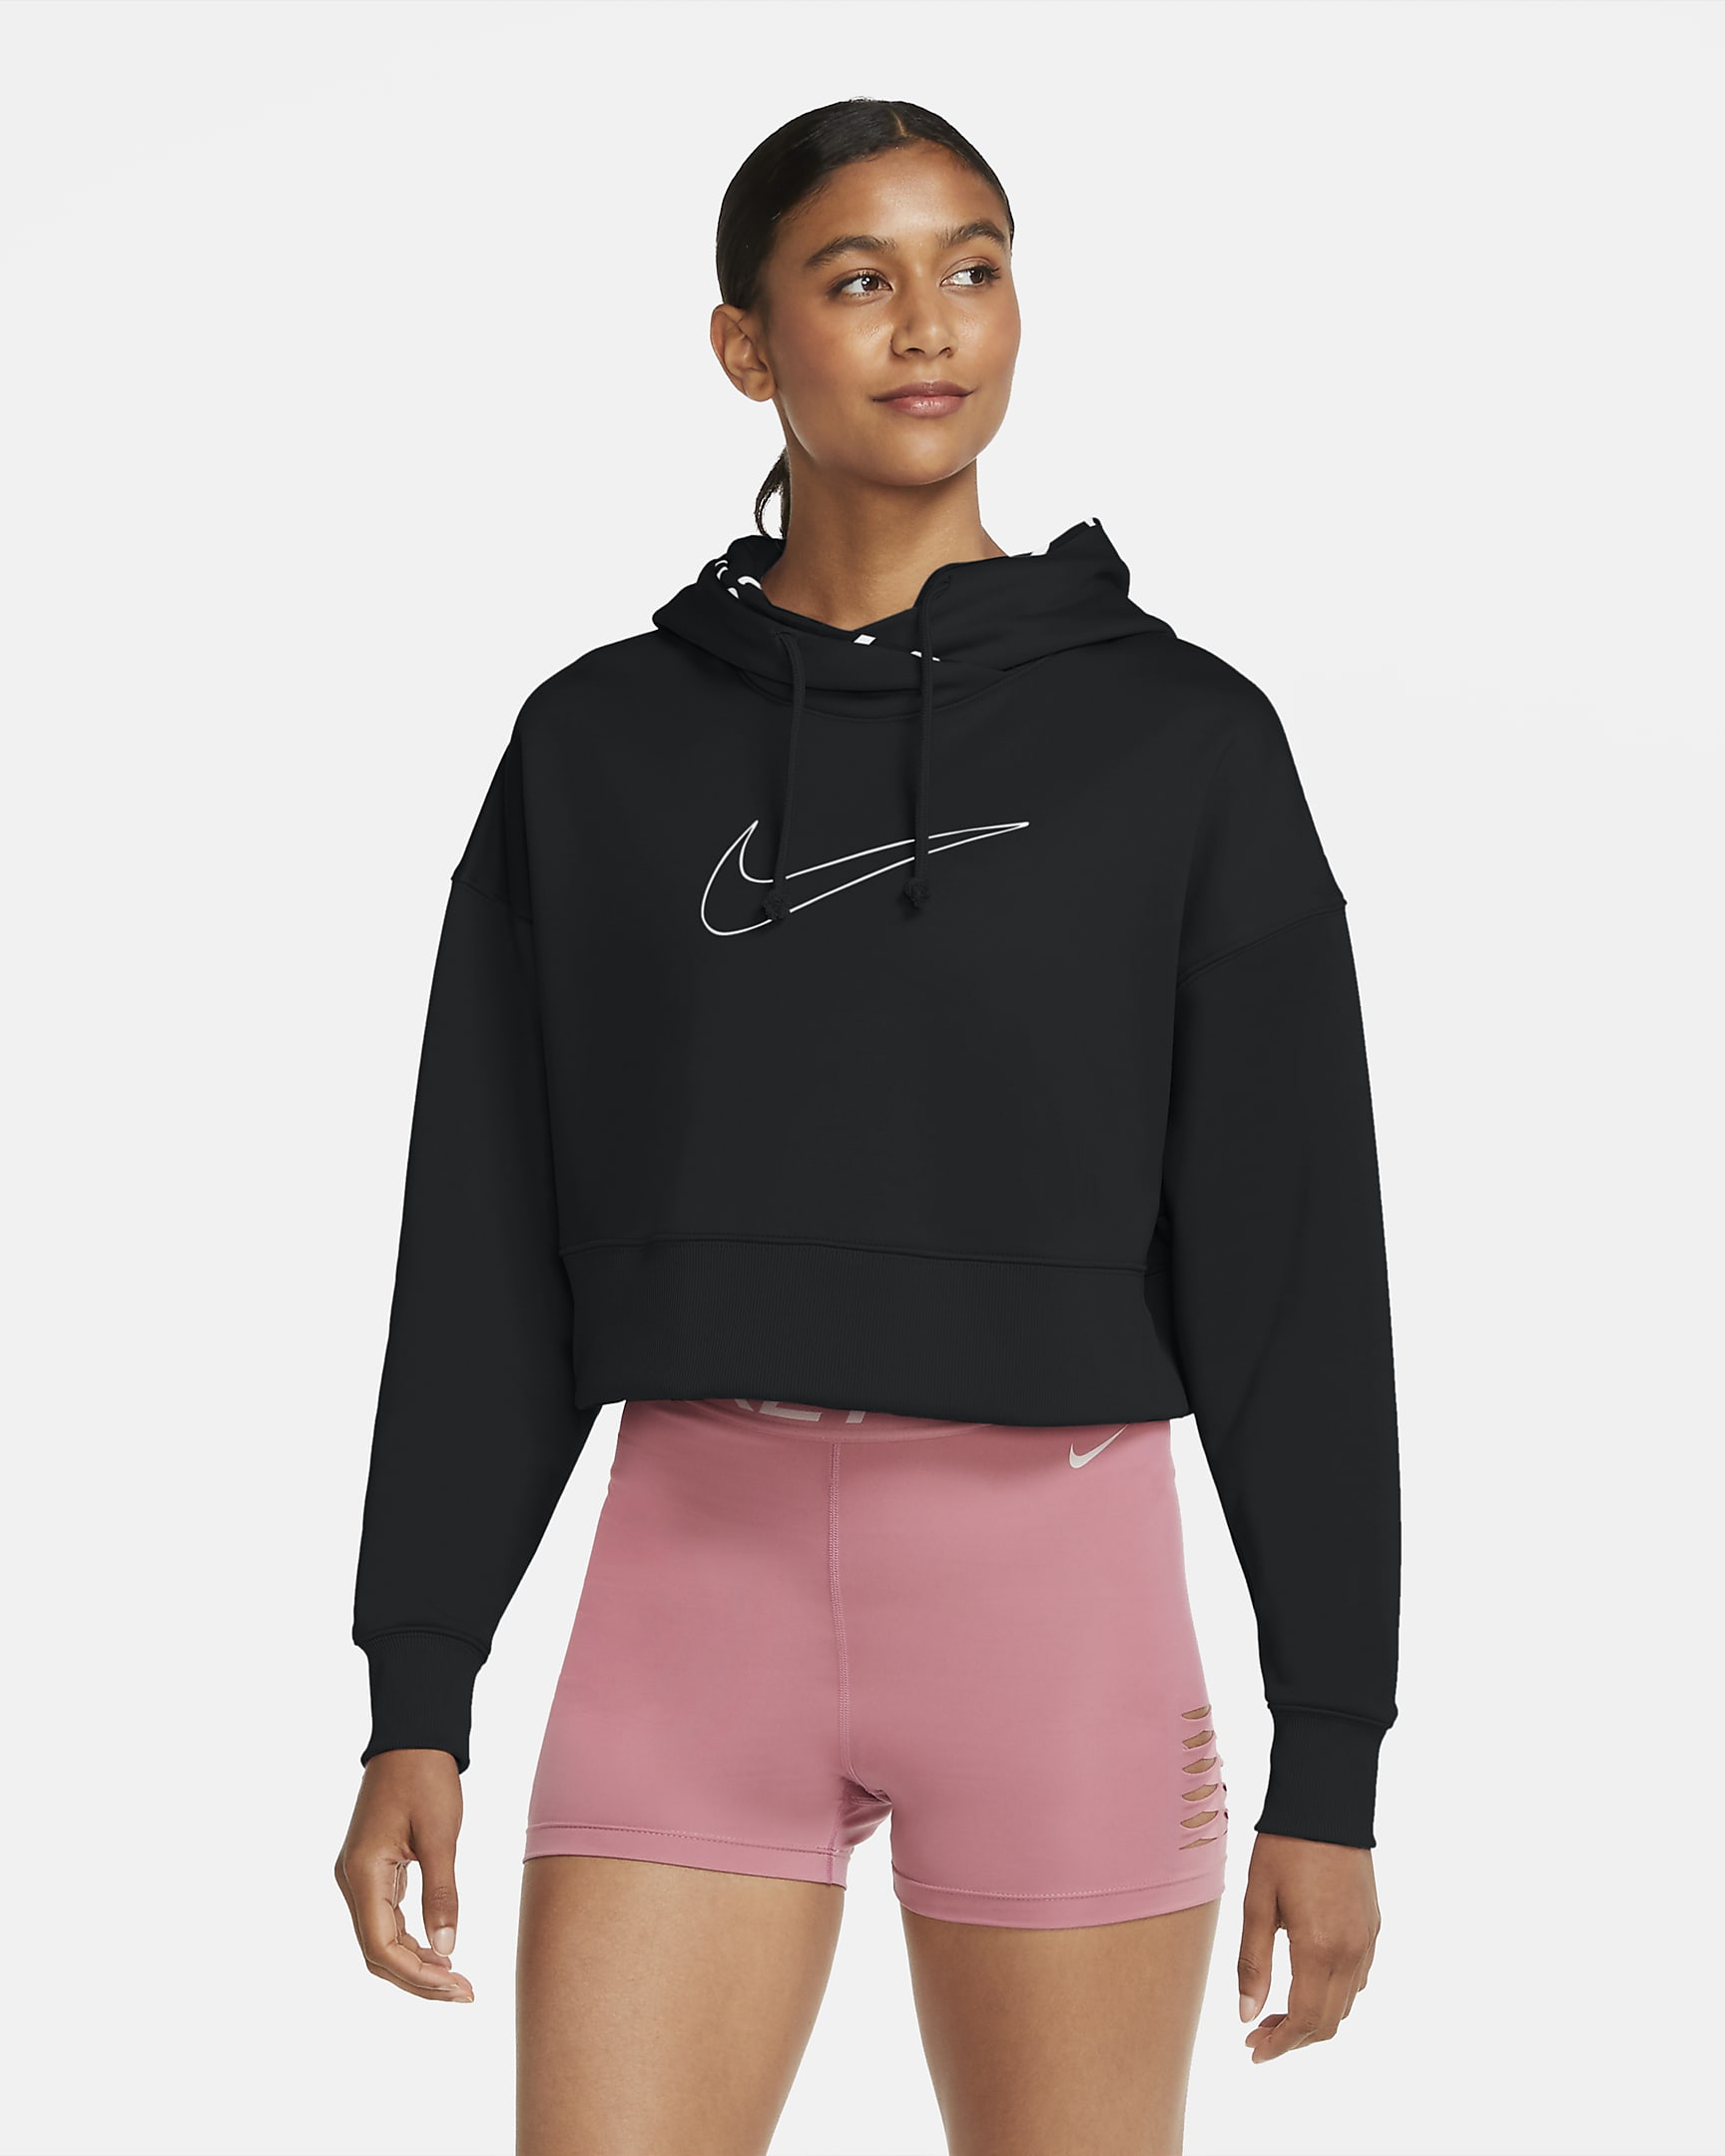 SUDADERA CAPUCHA Nike Therma Womens Cropped Training Pullover Hoodie NEGRO